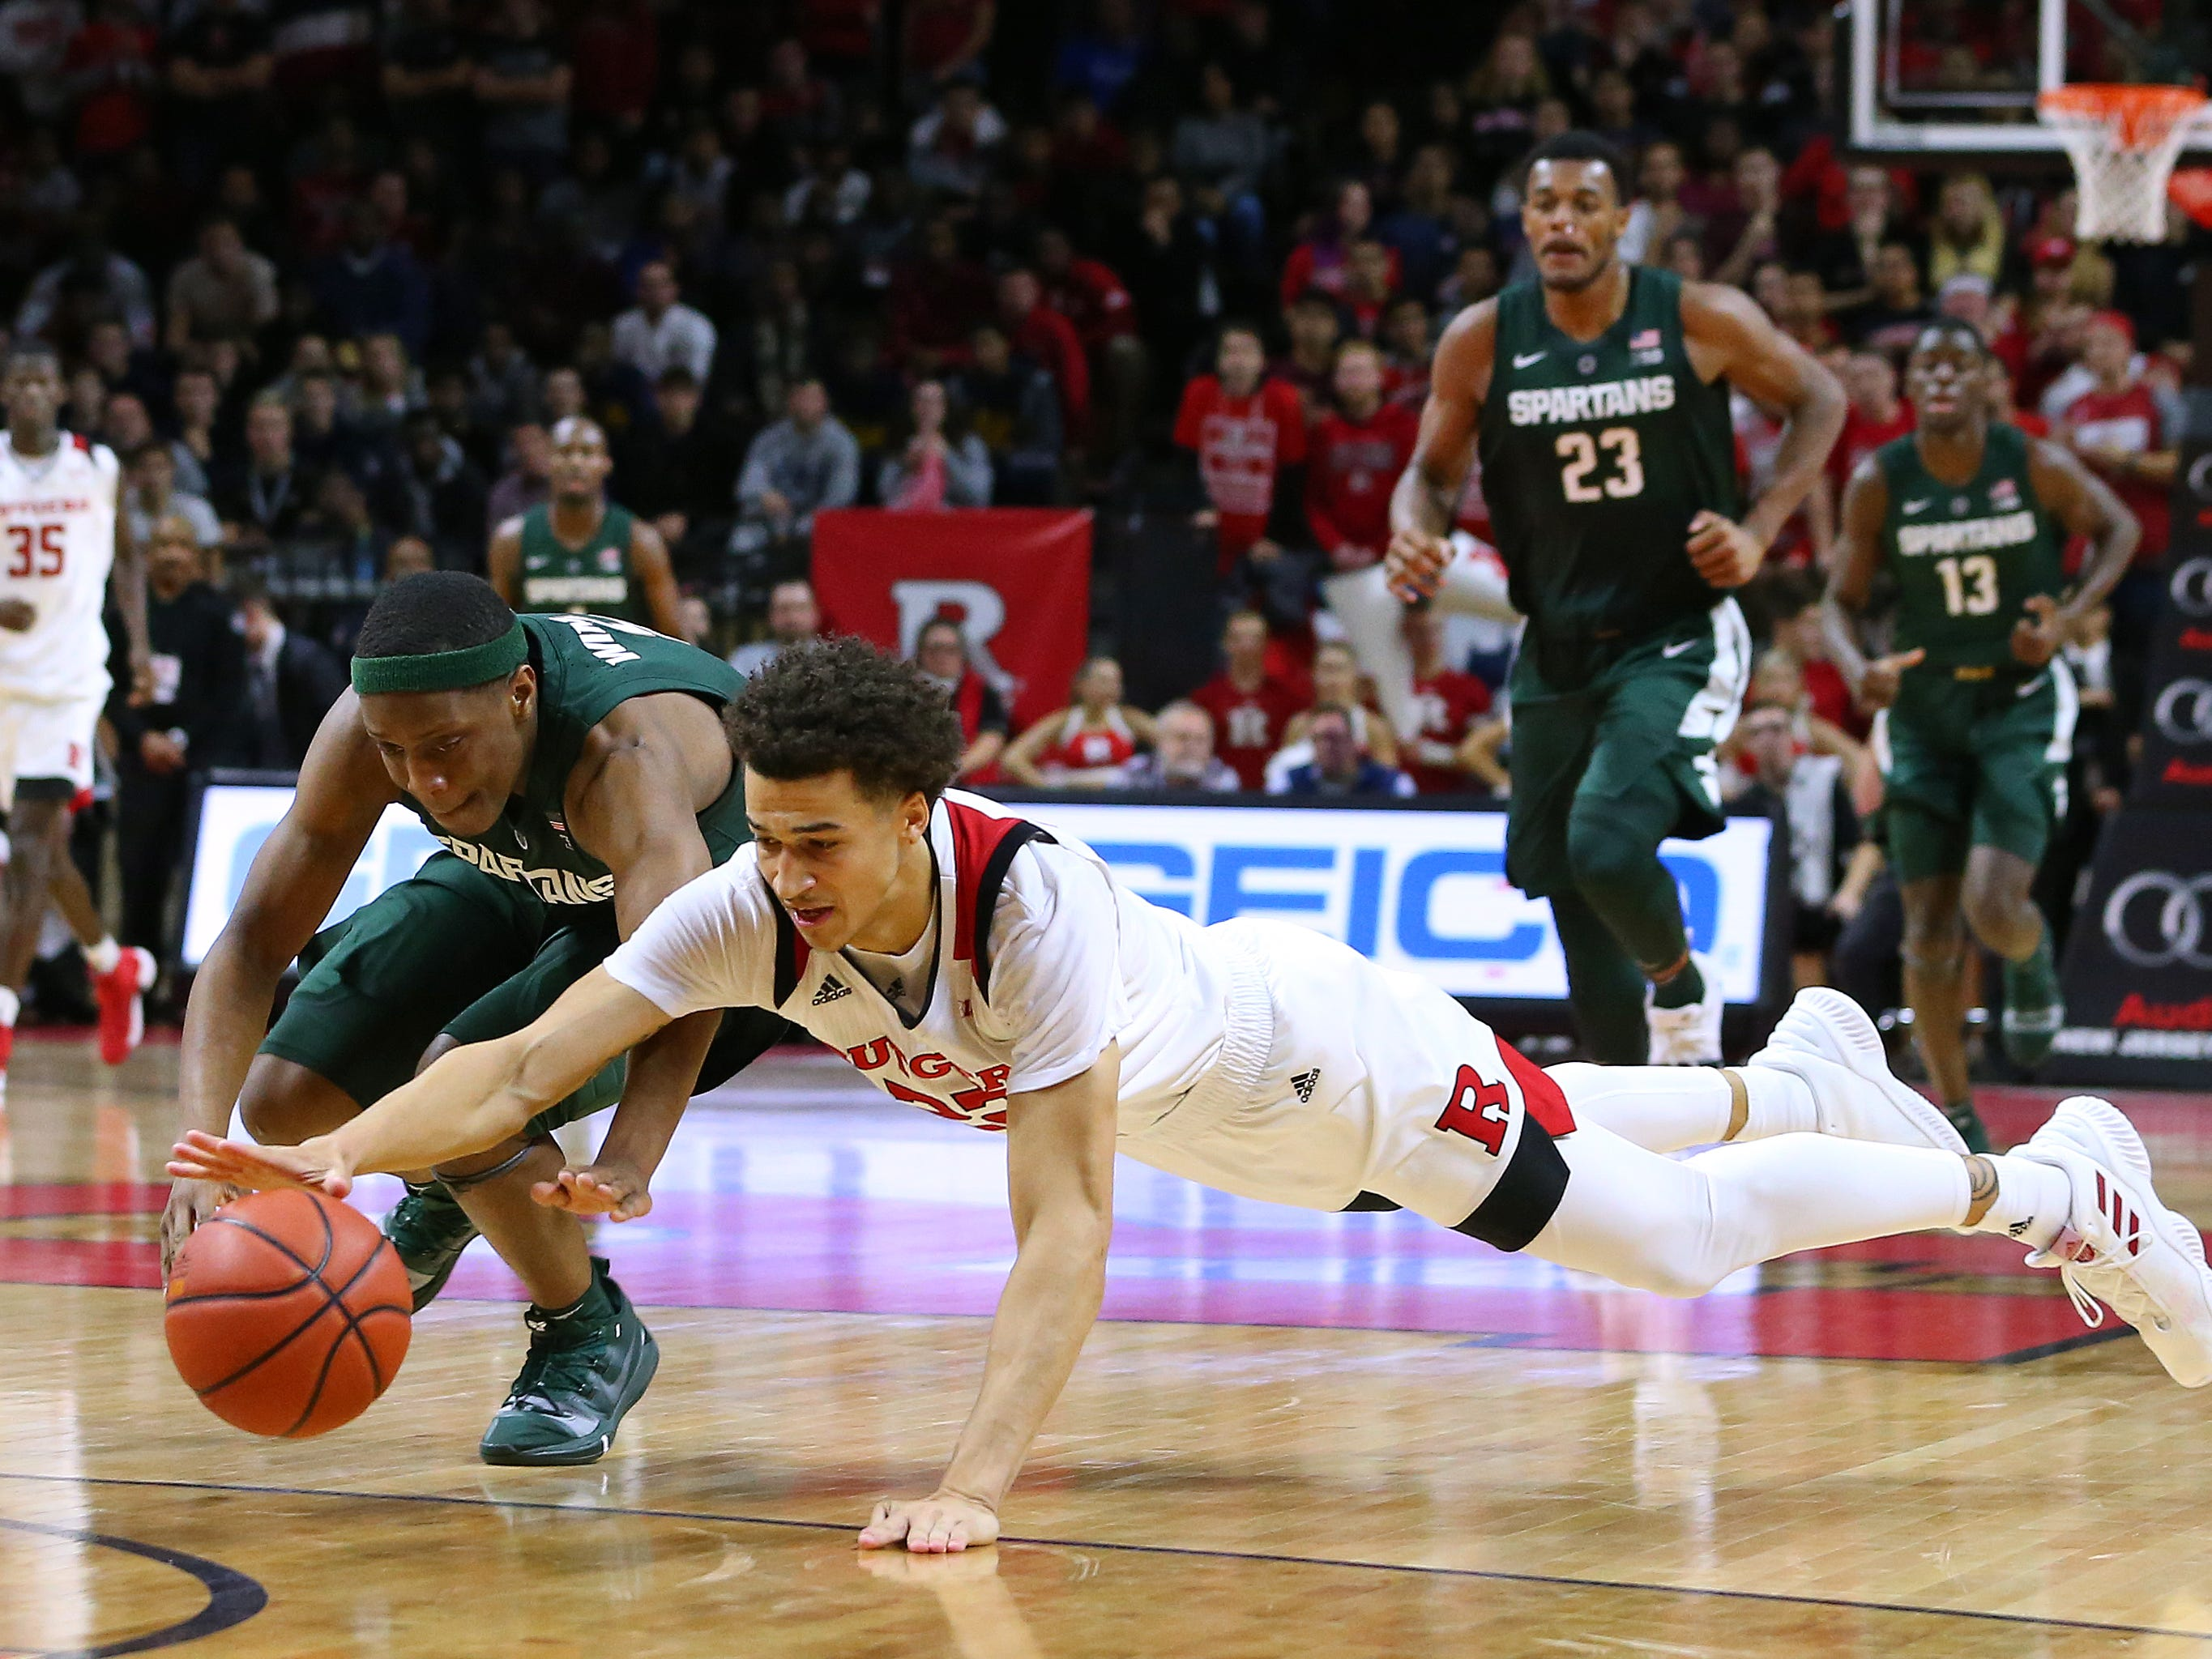 Caleb McConnell #22 of the Rutgers Scarlet Knights dives for a loose ball along with Cassius Winston #5 of the Michigan State Spartans during the first half of a college basketball game at the Rutgers Athletic Center on November 30, 2018 in Piscataway, New Jersey.